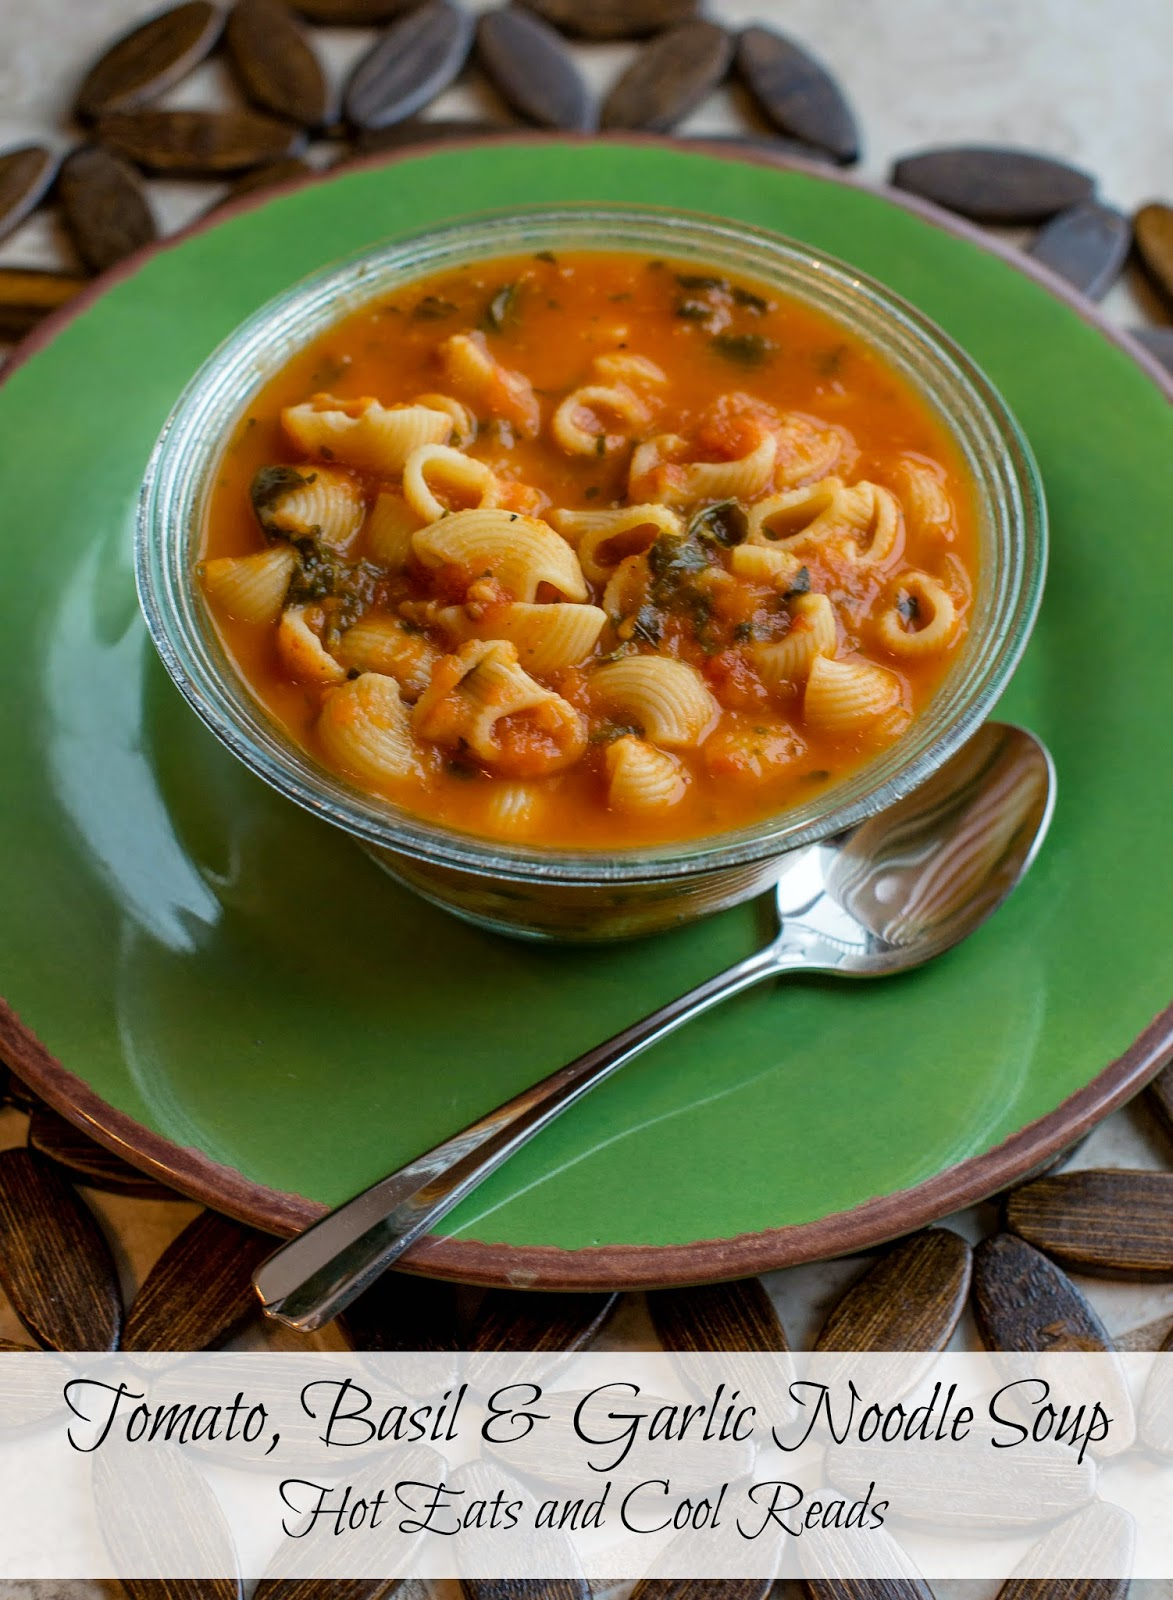 This meatless soup is full of flavor! Perfect for lunch or dinner! Tomato, Basil and Garlic Noodle Soup from Hot Eats and Cool Reads!